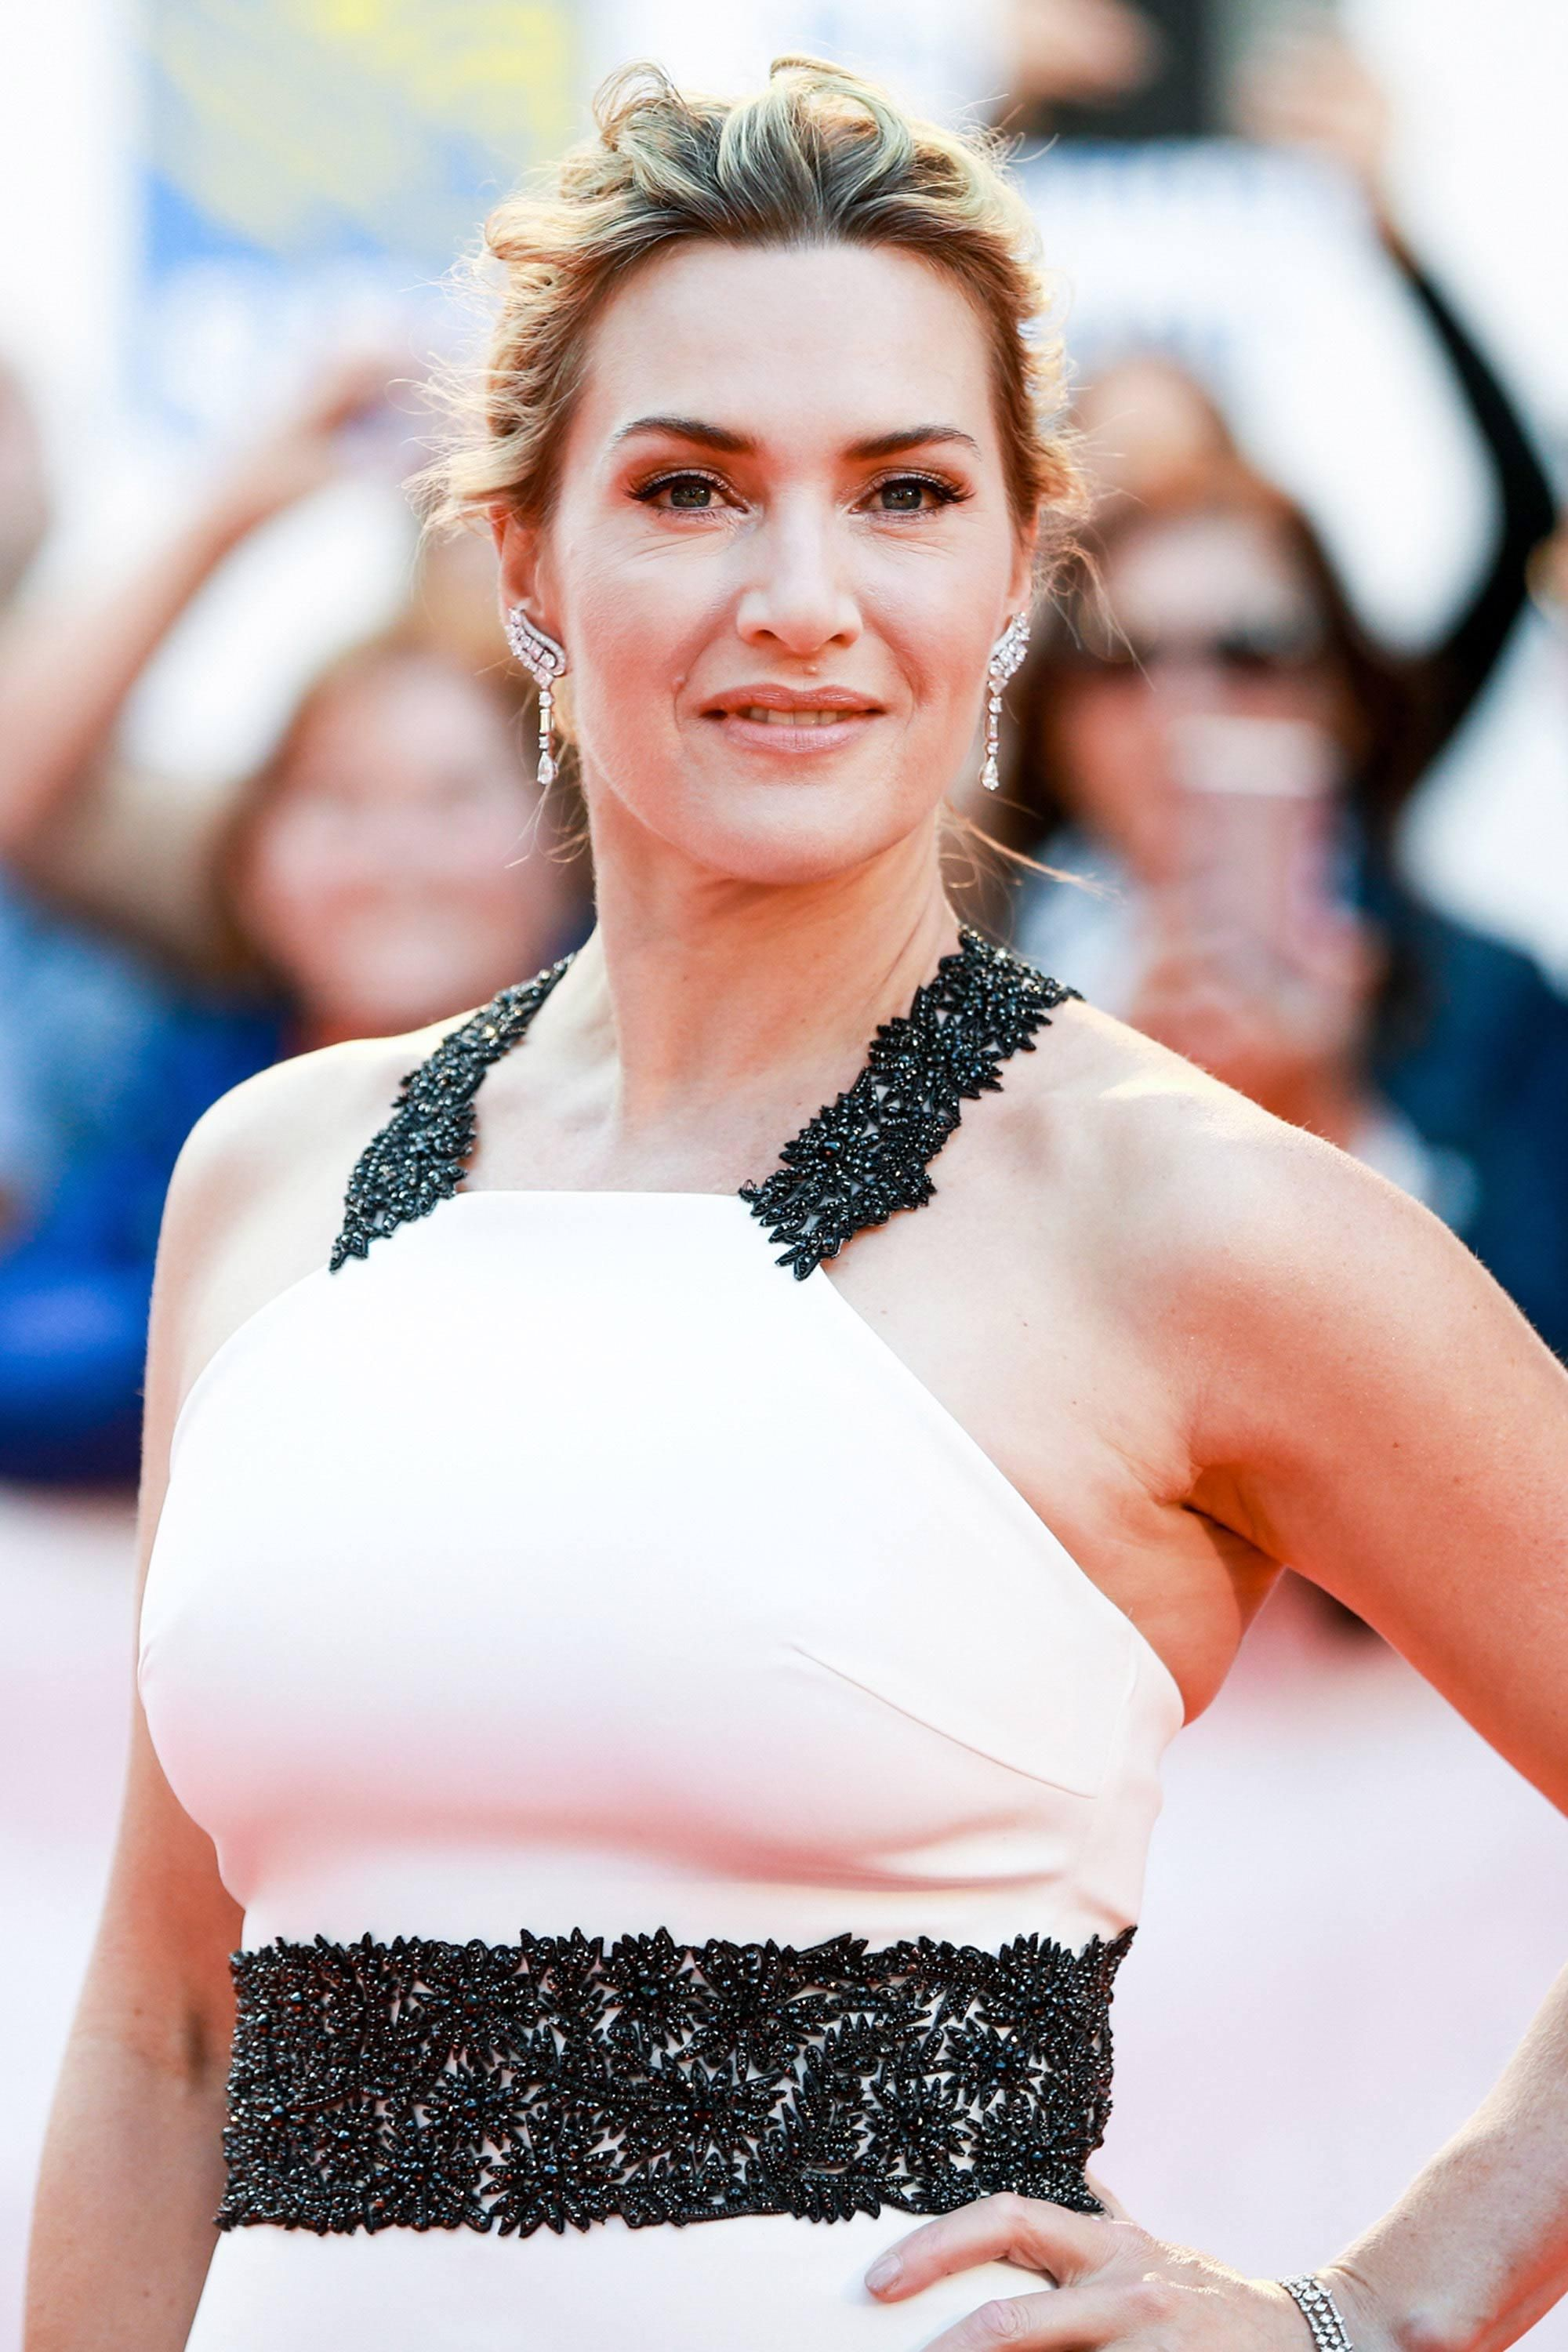 Kate Winslet in a white Badgley Mischka dress with black beaded details